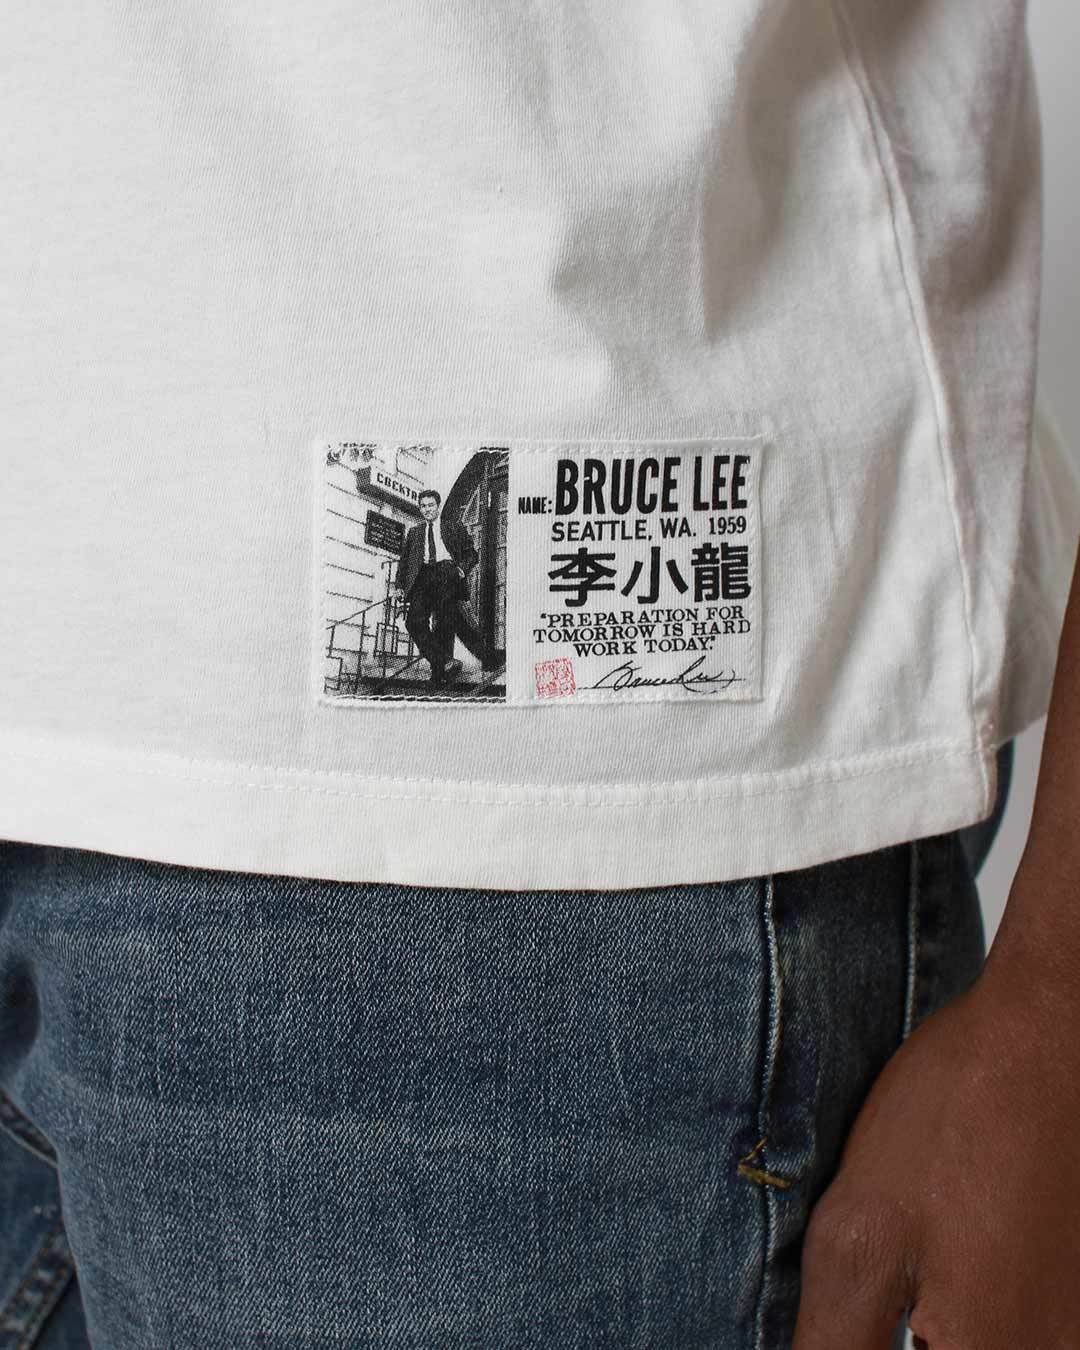 Bruce Lee - Ruby Chow's Tee - Roots of Inc dba Roots of Fight